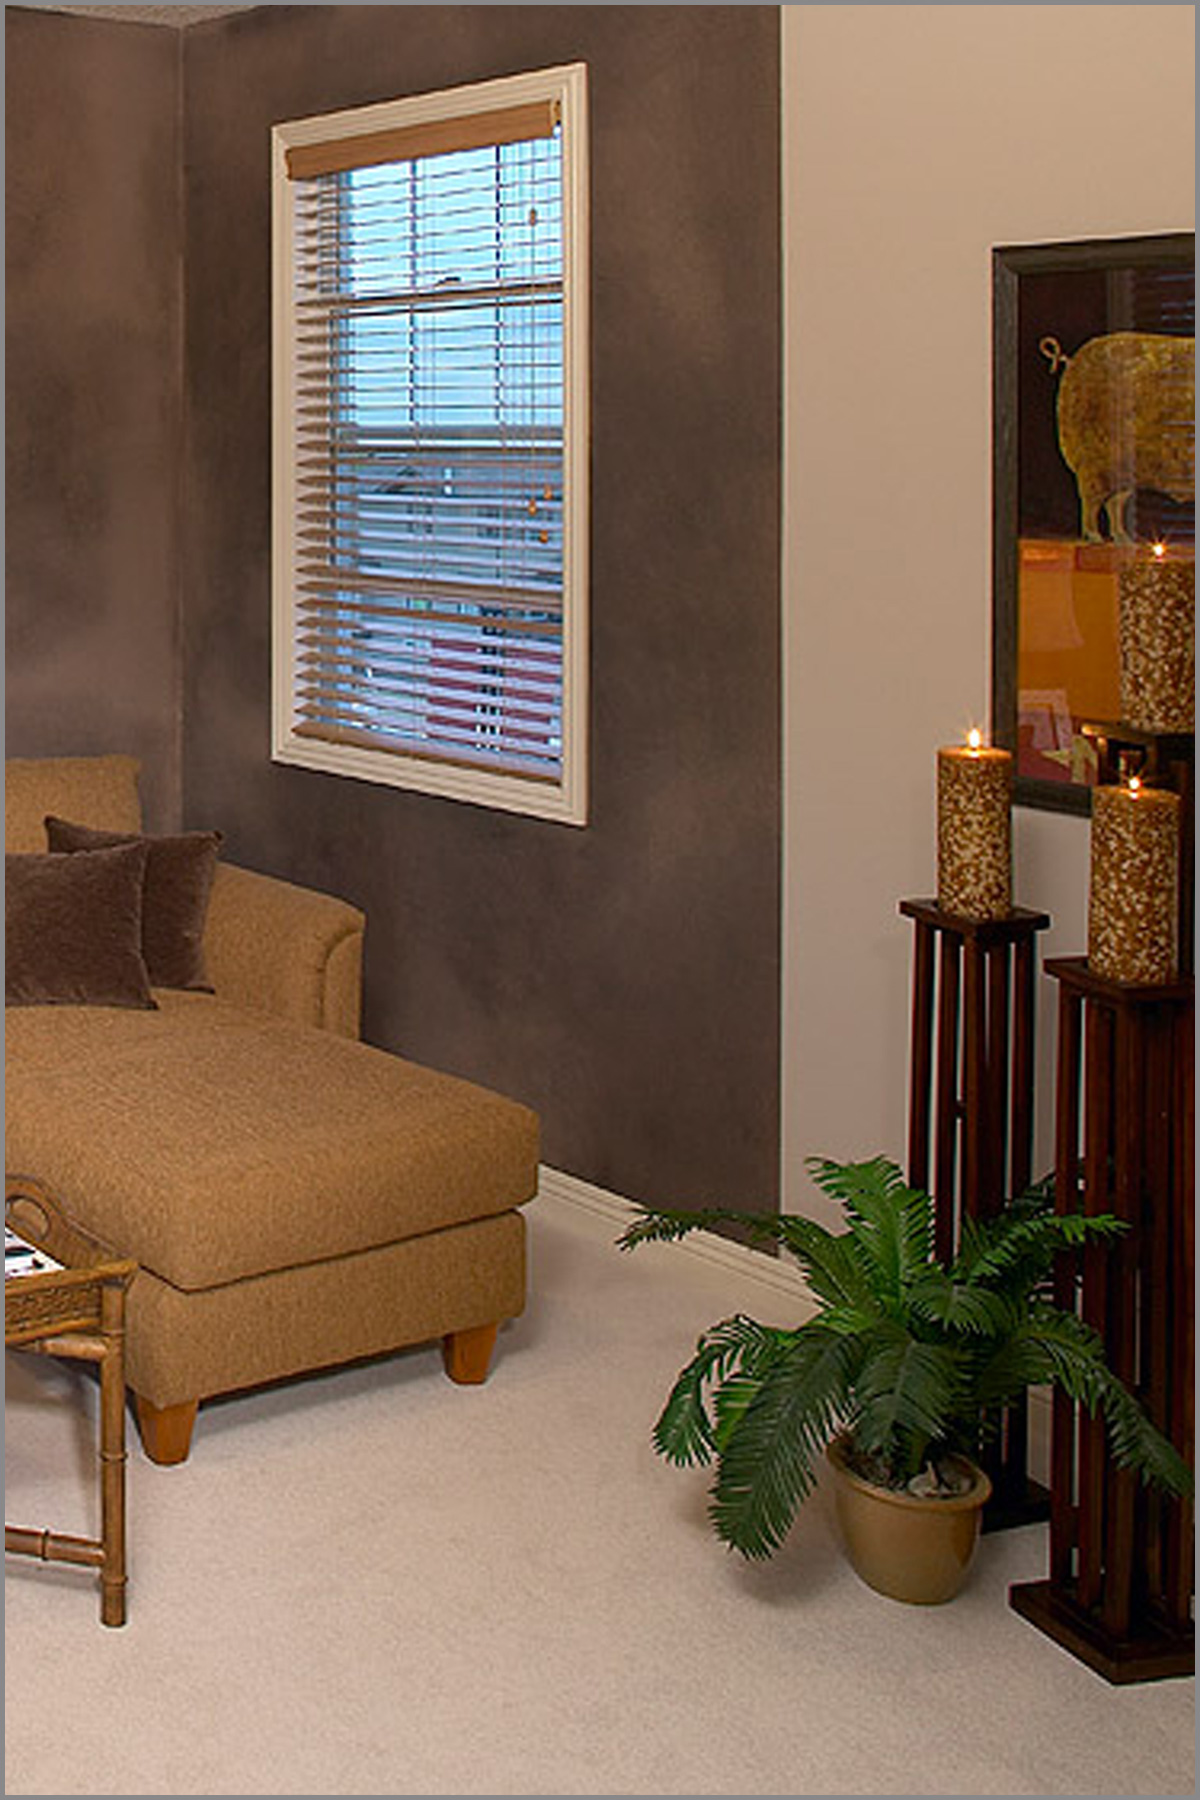 Cloverdale Paint Interior Accent Wall